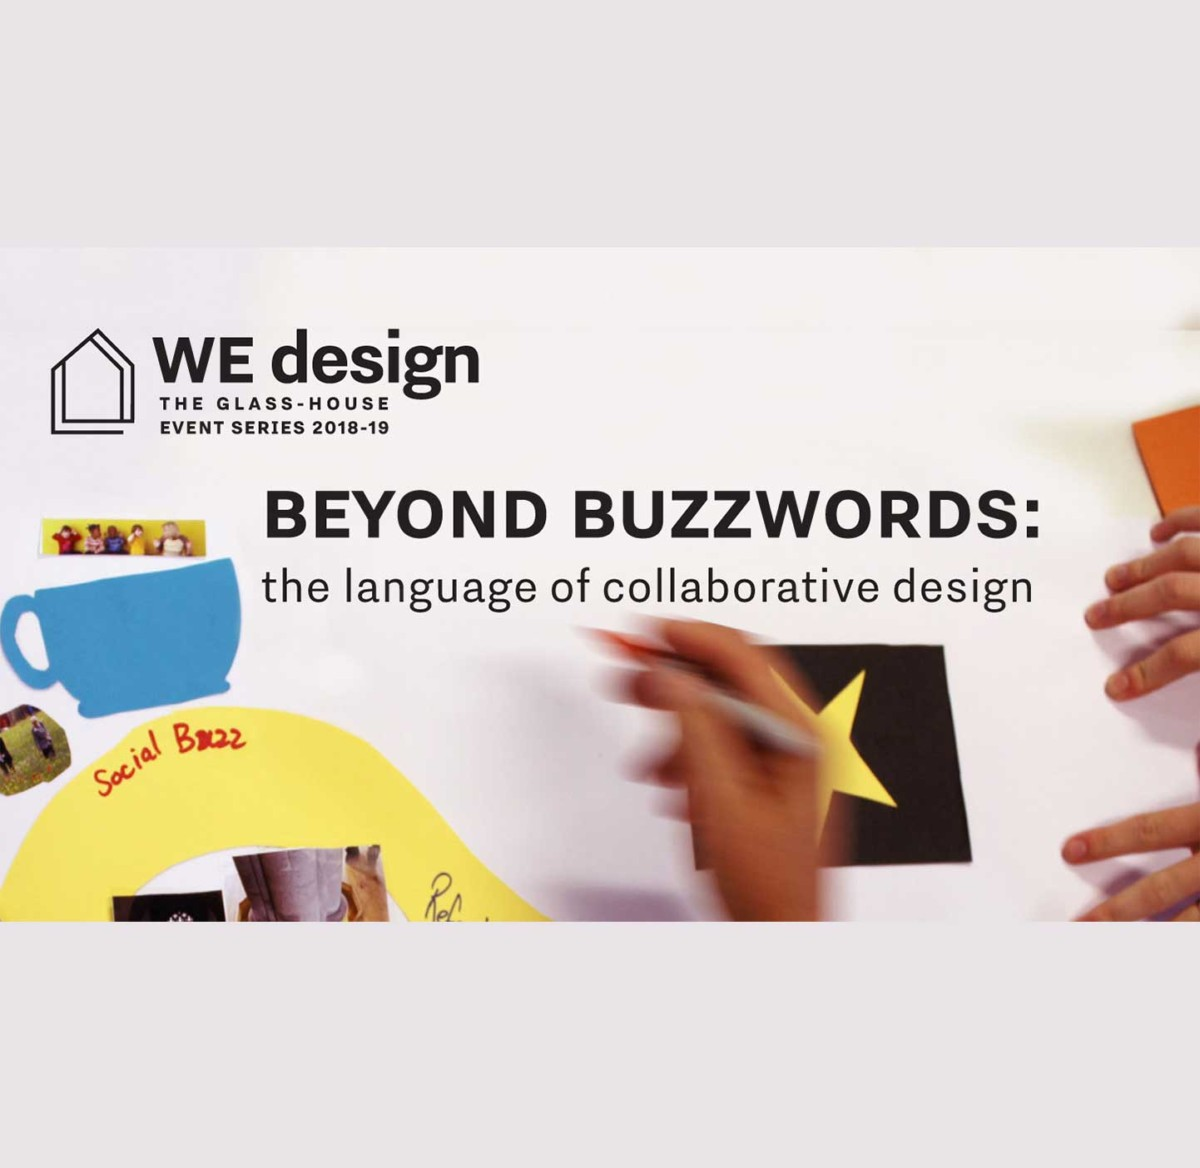 Beyond Buzzwords: the language of collaborative design